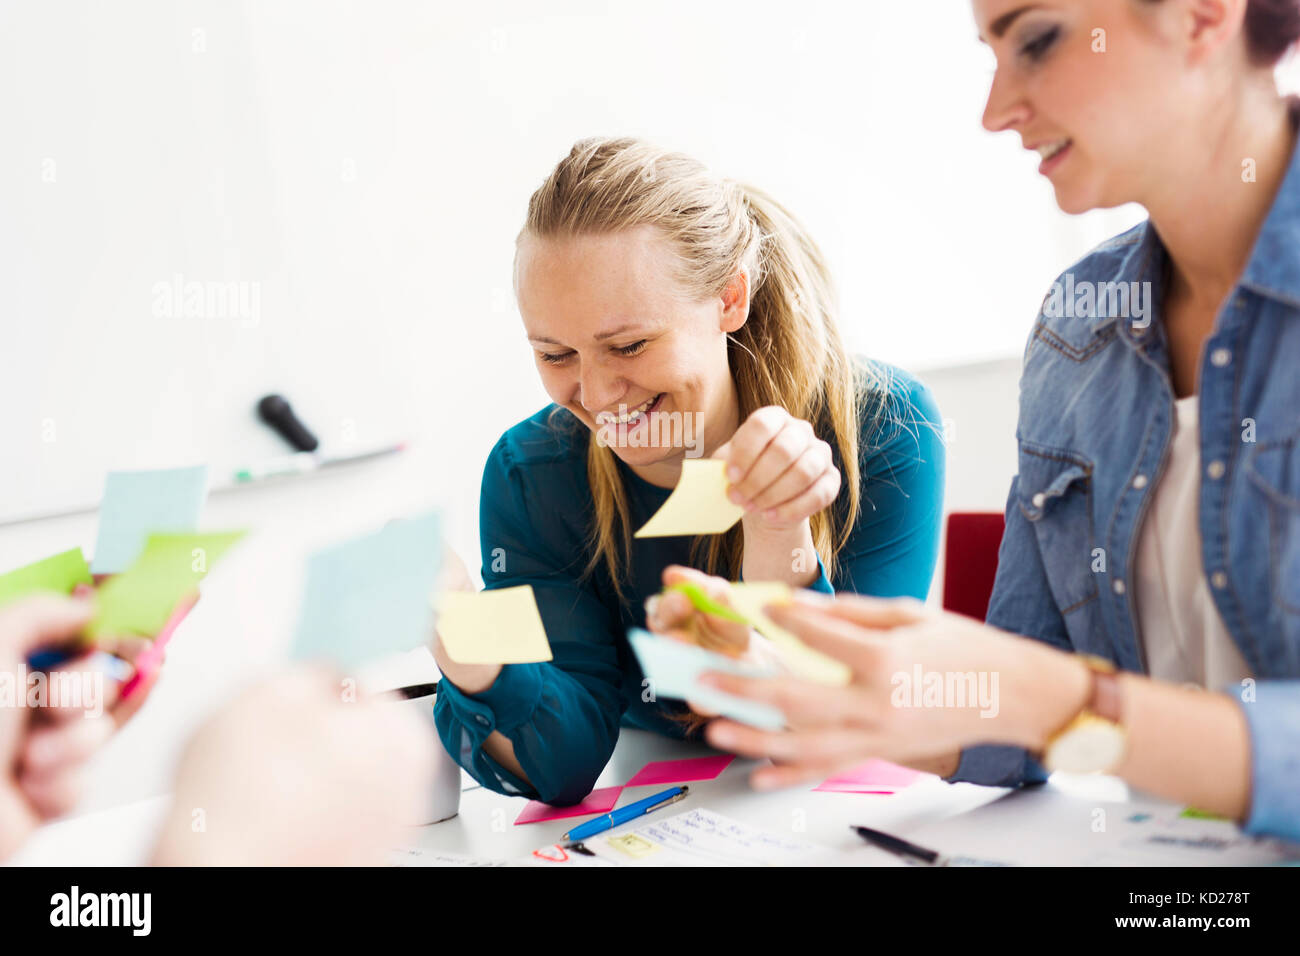 Colleagues using adhesive notes during business meeting - Stock Image